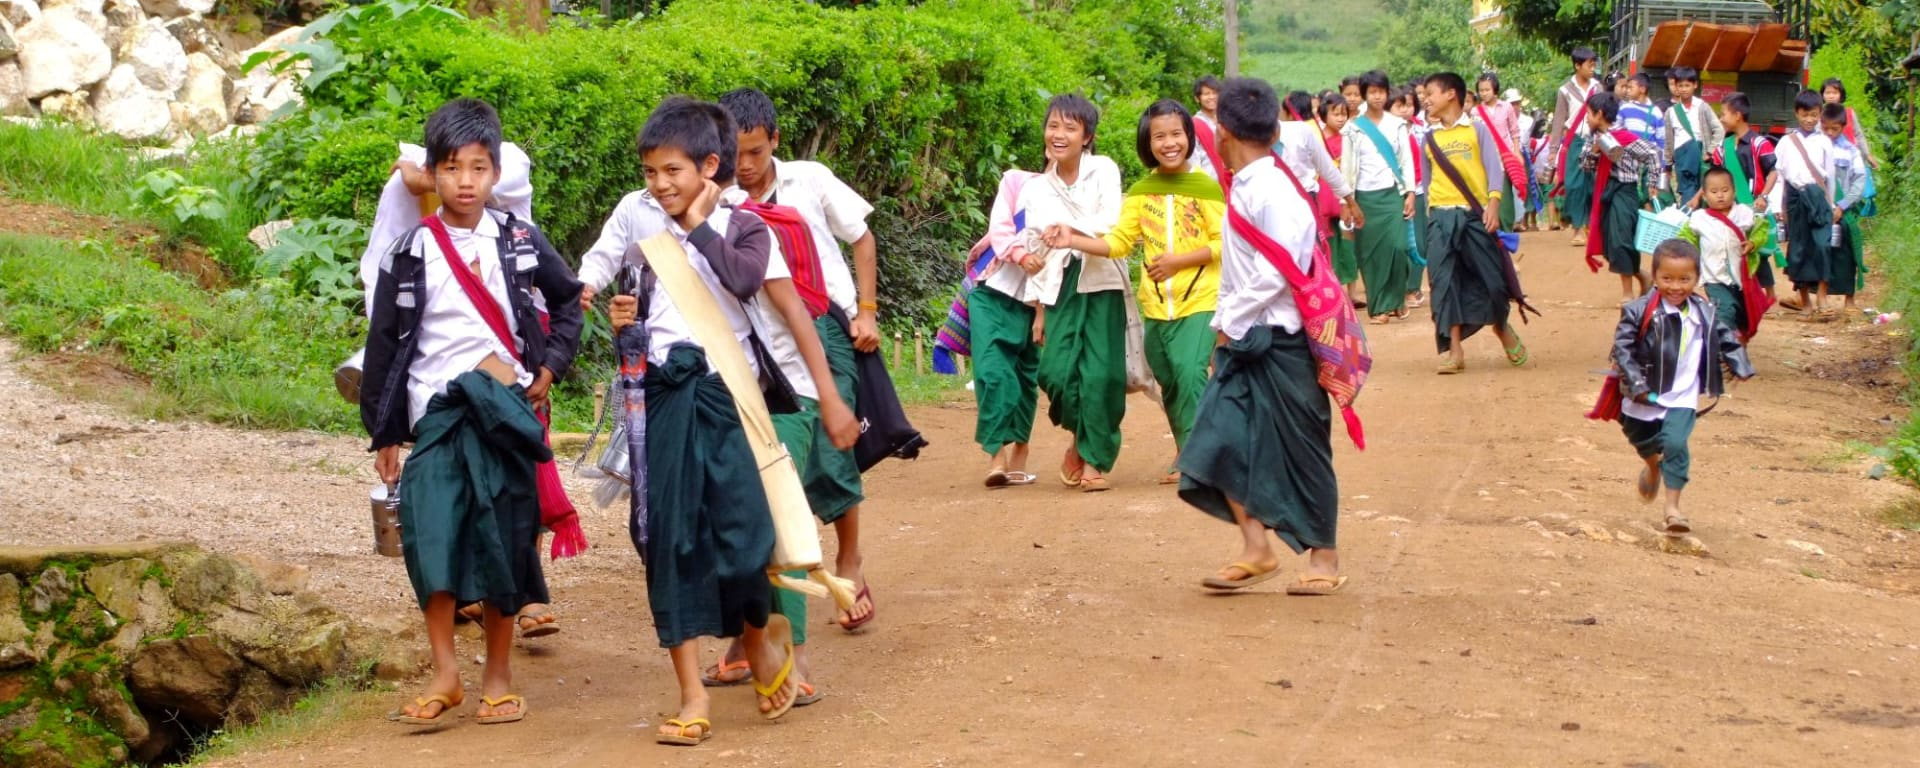 Wandern im malerischen Shan Staat (4 Tage) ab Inle Lake: Schools out